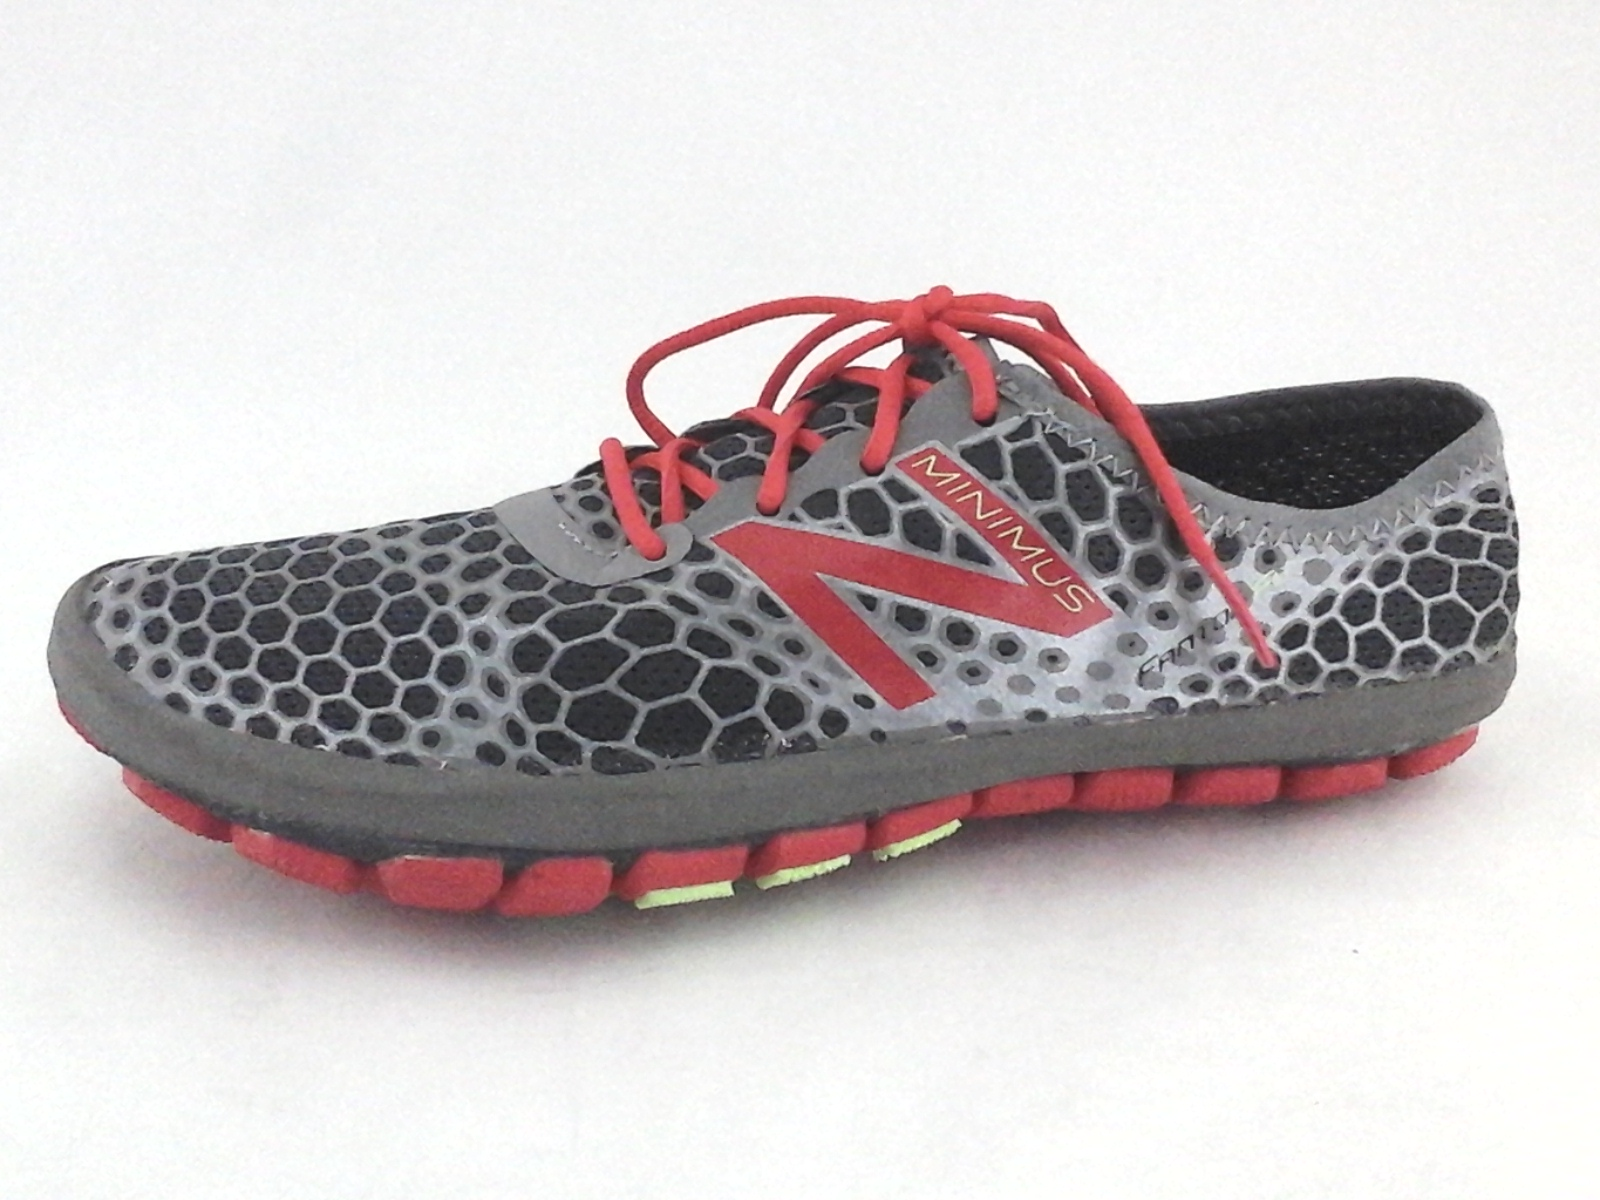 Details about New Balance Minimus FANTOM FIT Running Shoes Gray Women's US 9 EU 40.5 $130 RARE